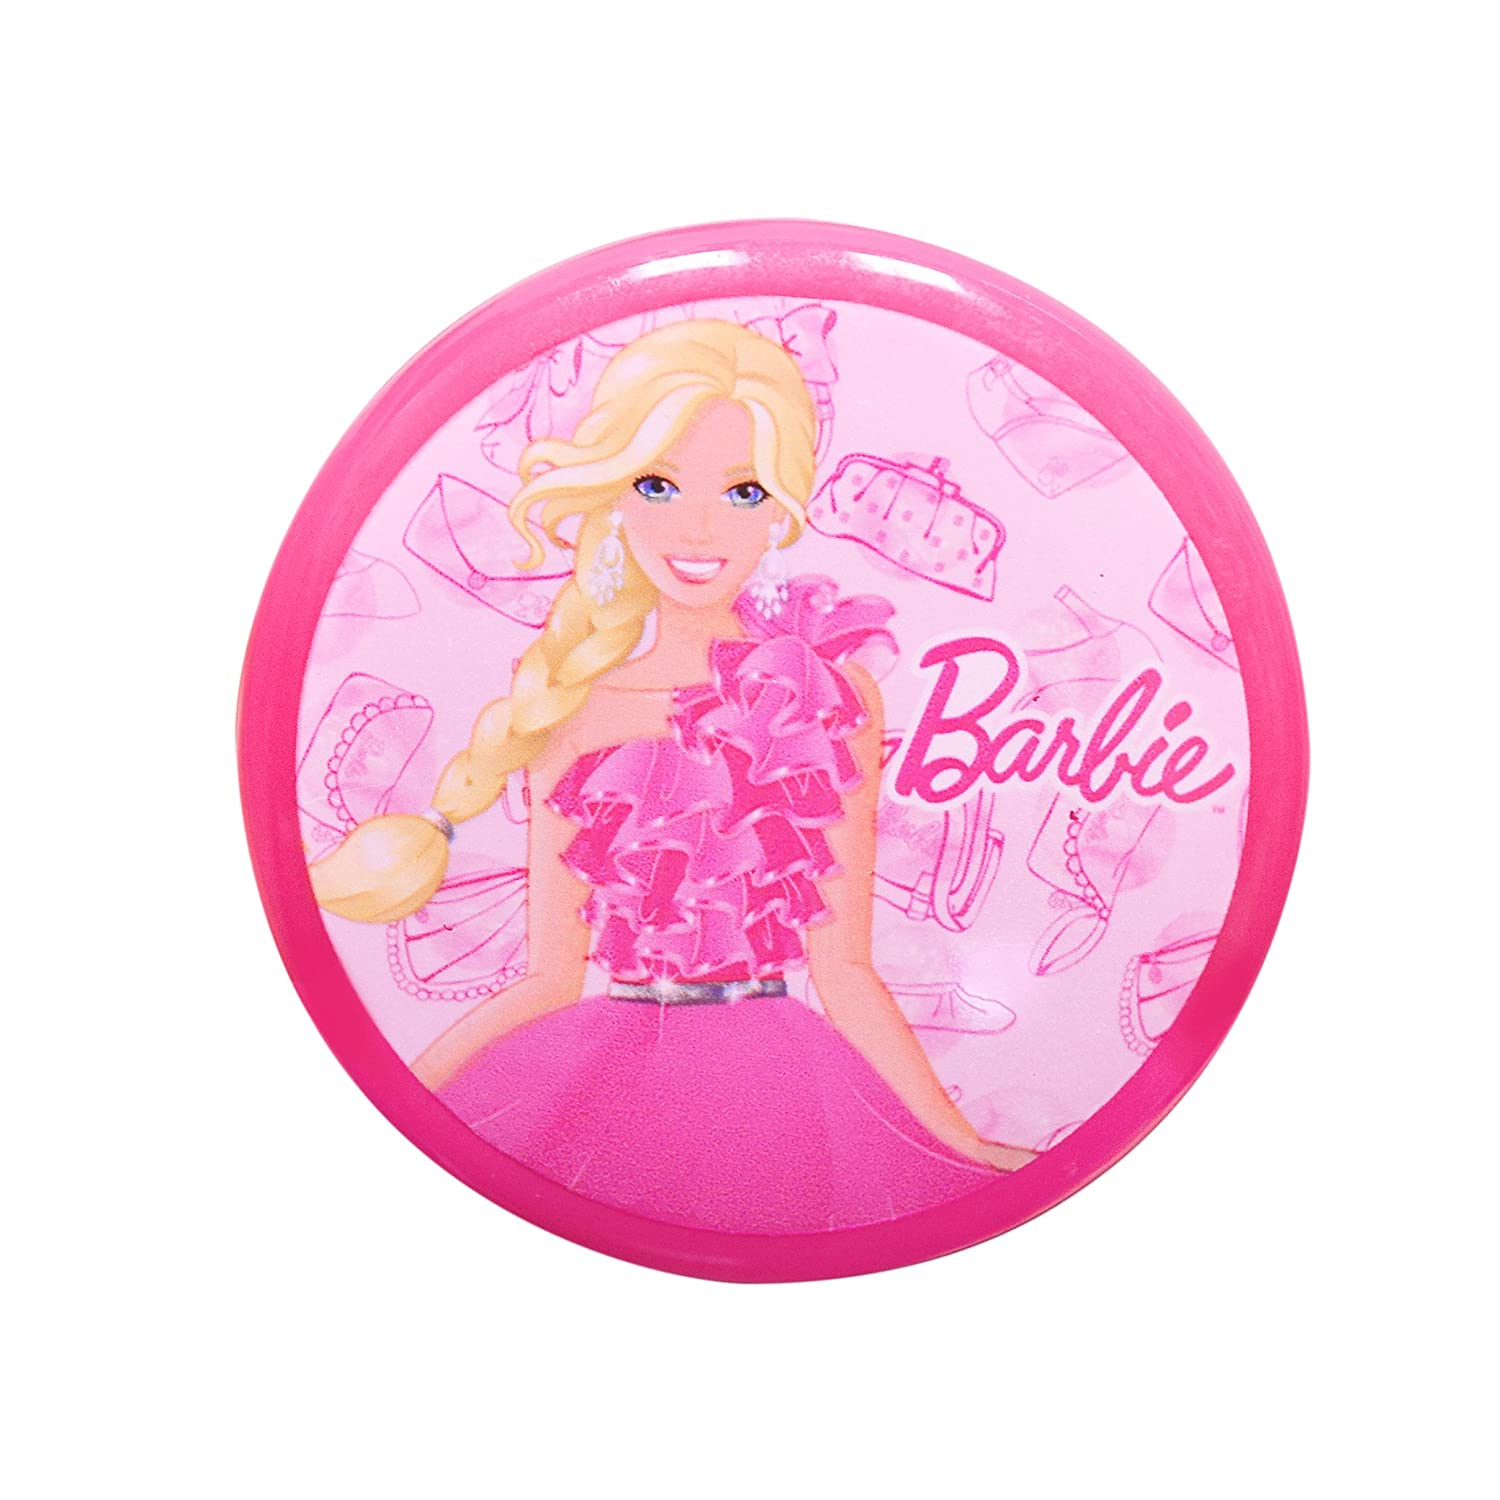 Buy Barbie Round Wall Nightlight Online at Low Prices in India ...